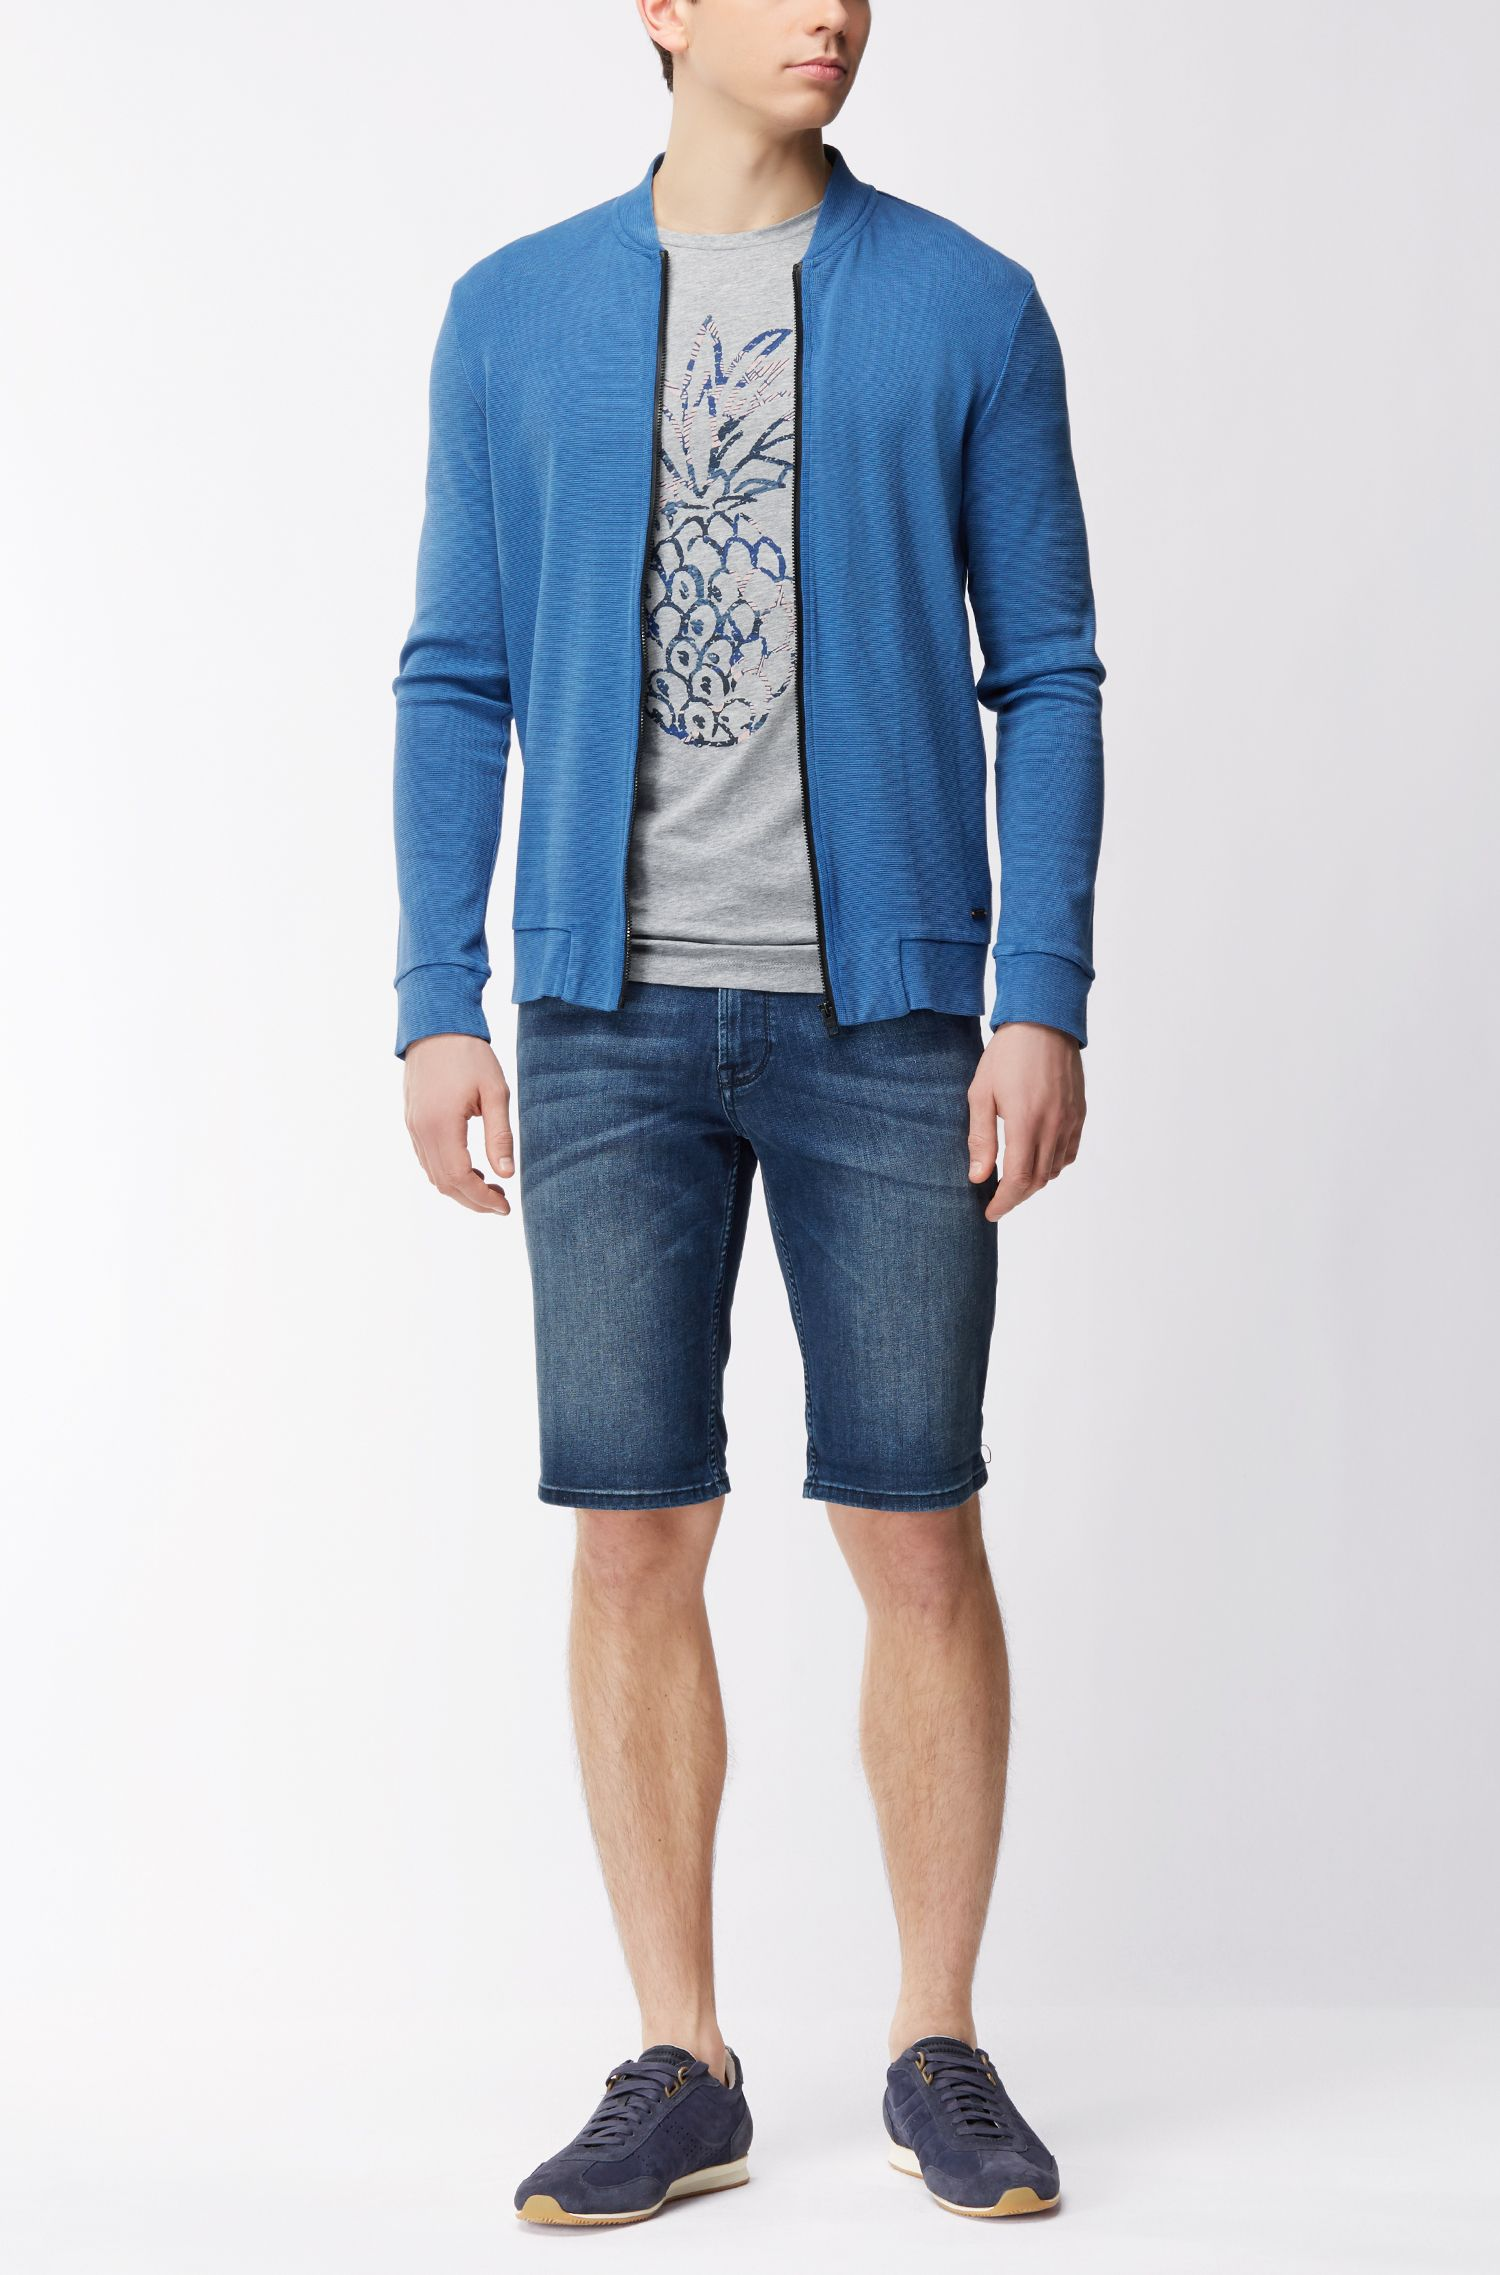 Shorts regular fit en denim superelástico